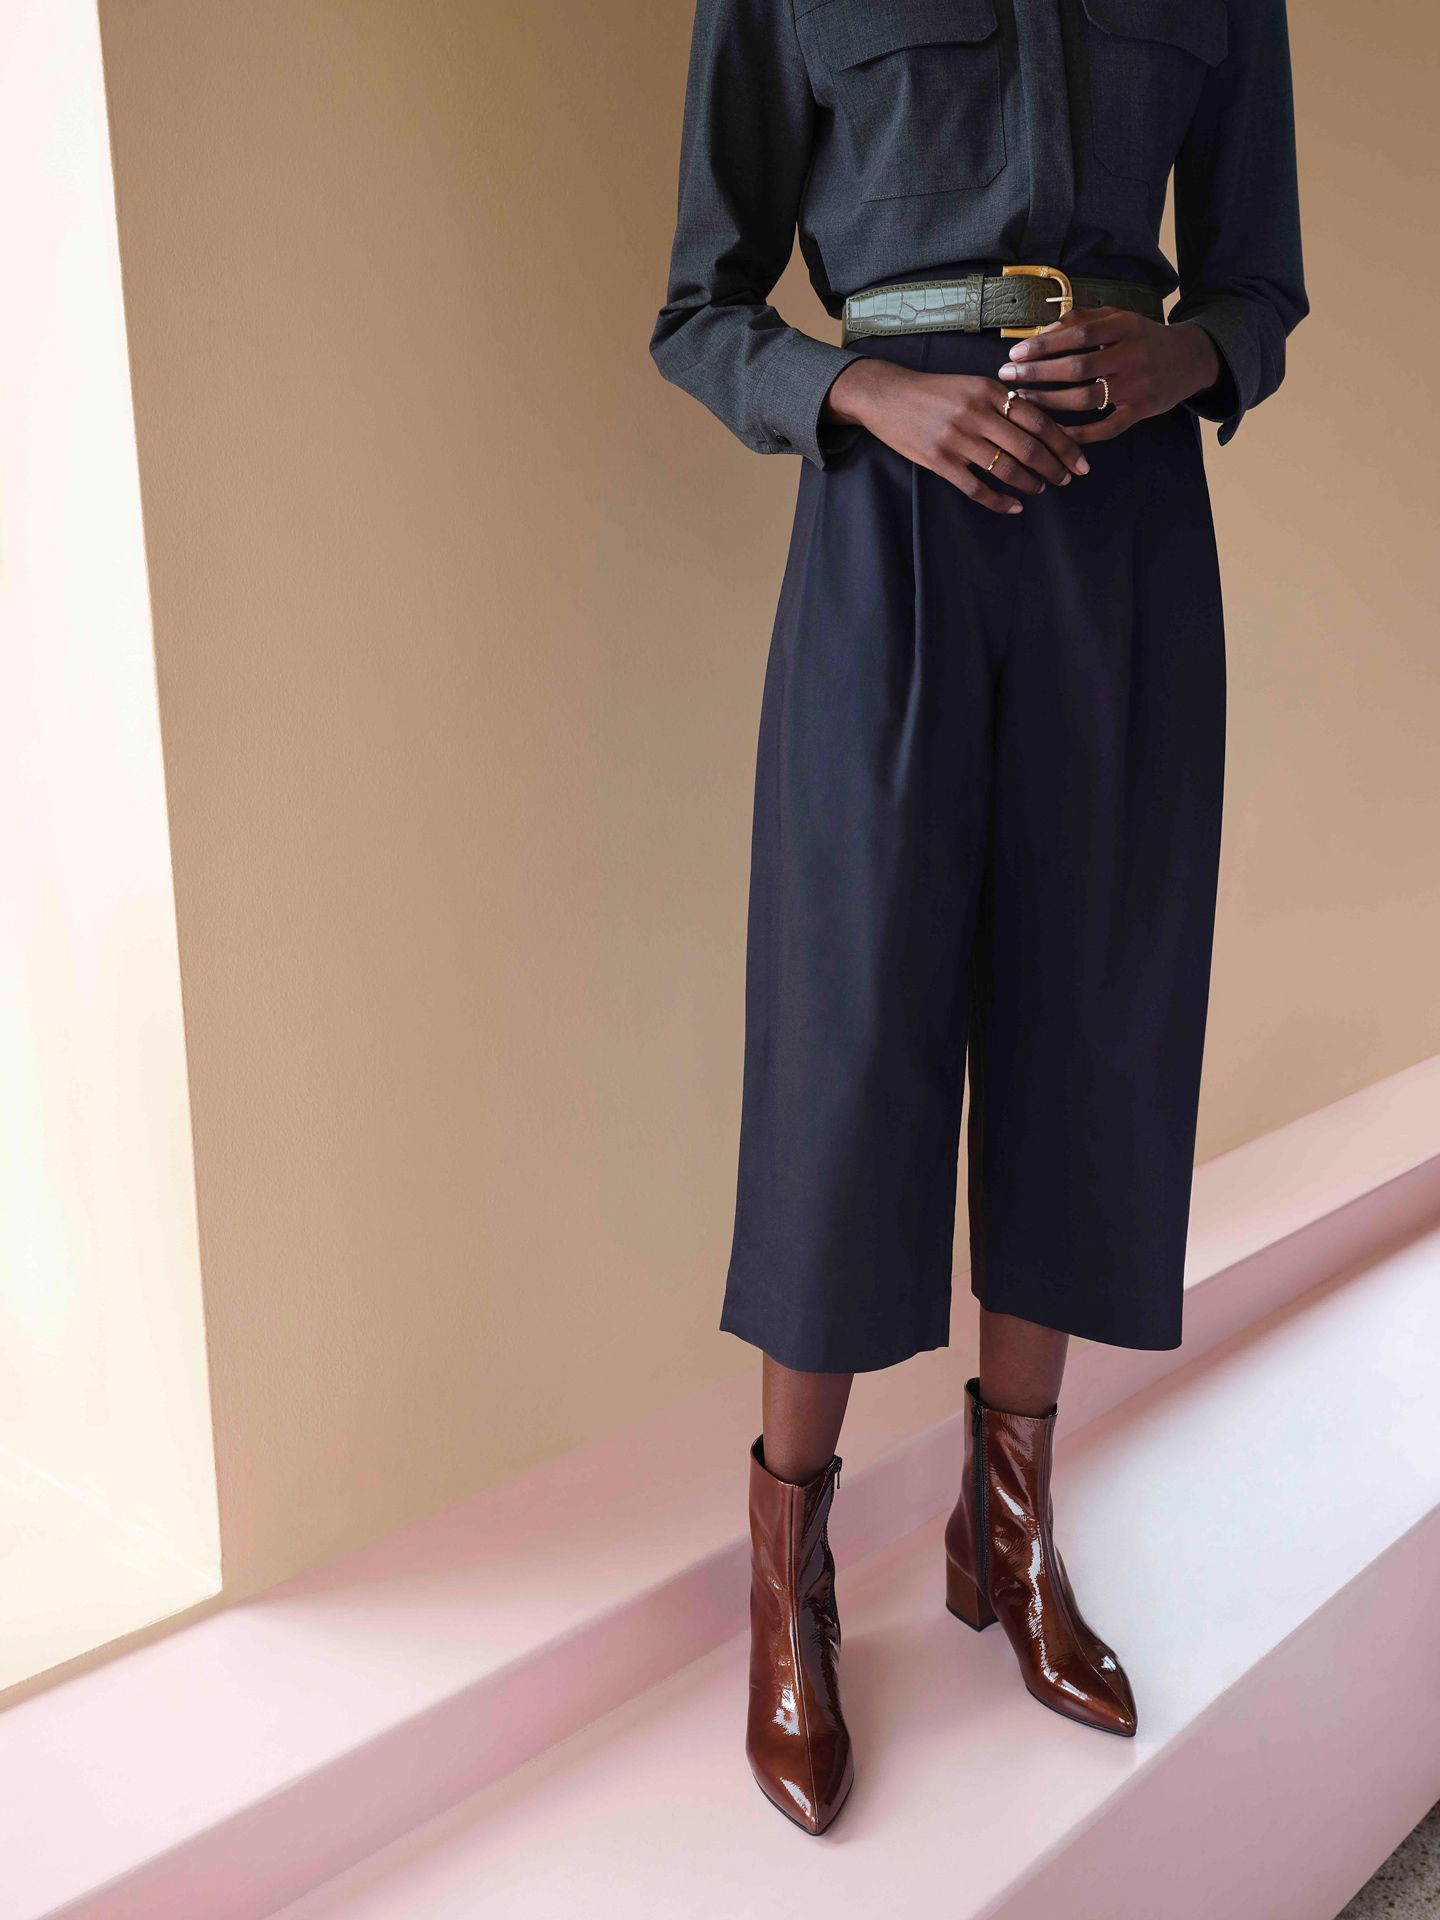 black model wearing large dark blue pants with dark blue shirt and shiny brown high-heeled boots posing on pink ground by Maxyme G Delisle with artistic direction from Studio TB at Pastel Rita for Jean-Paul Fortin Fall collection